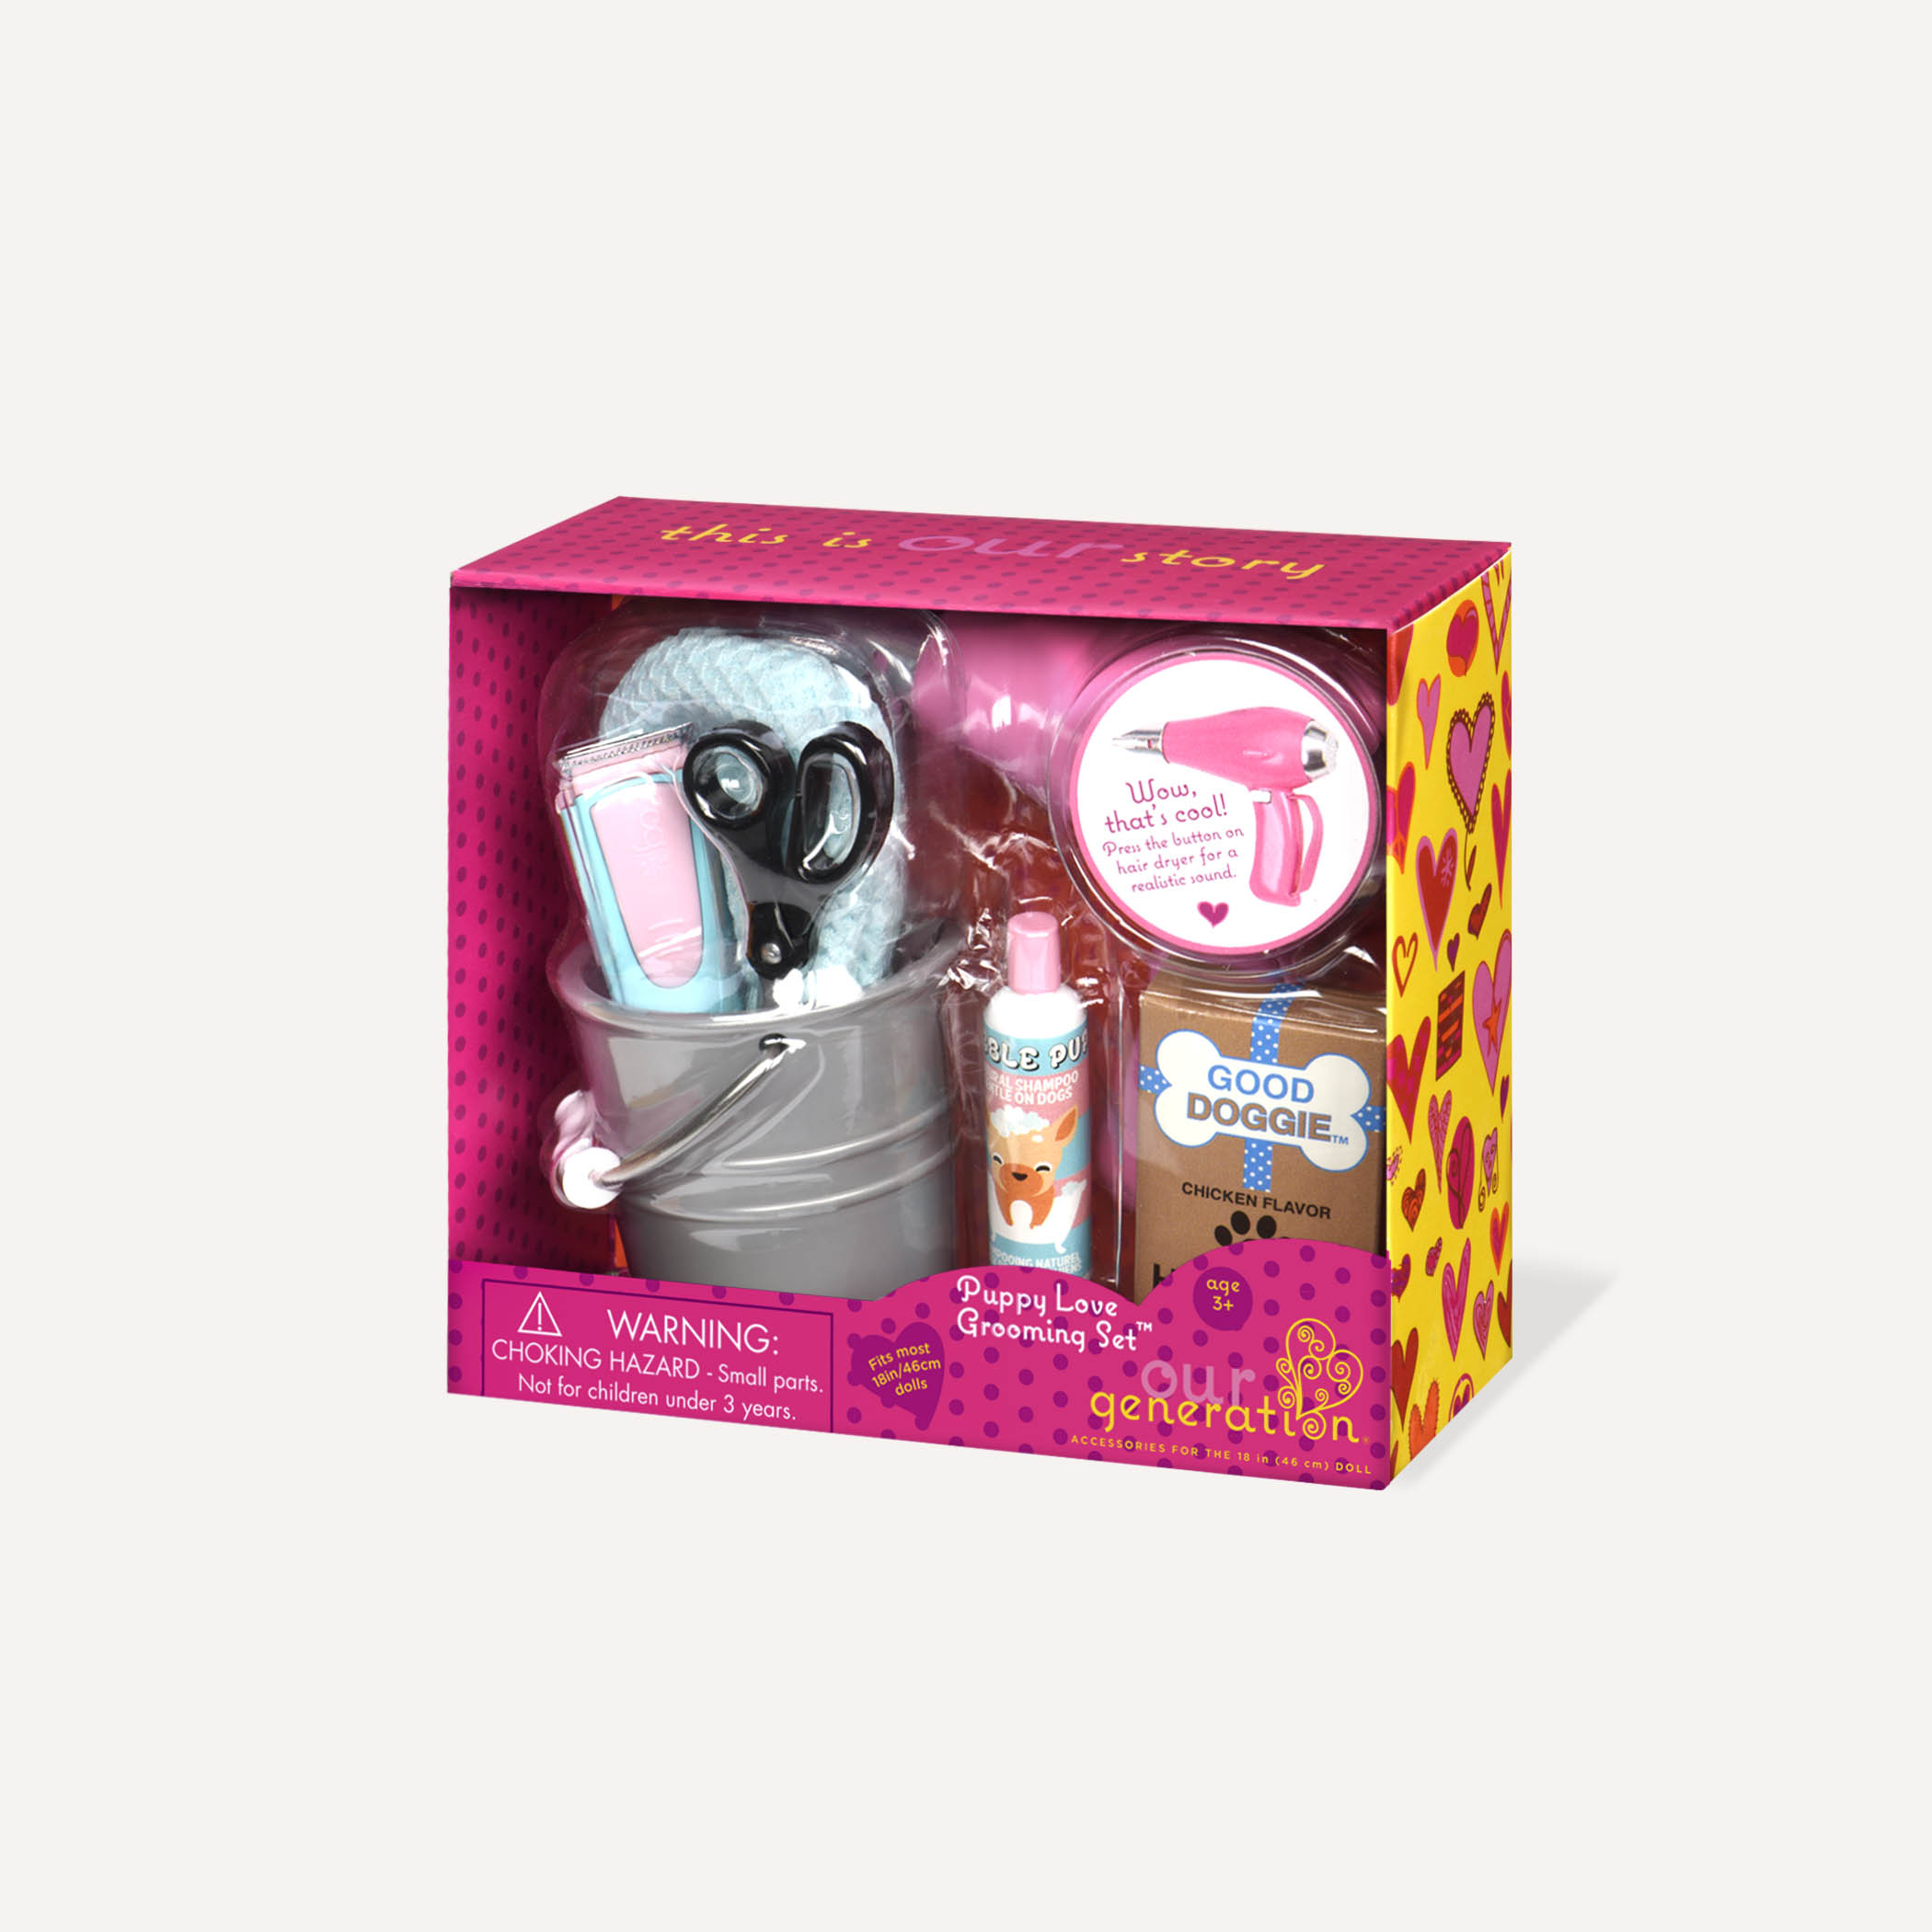 Mini accessories OG - Puppy Love Grooming Set